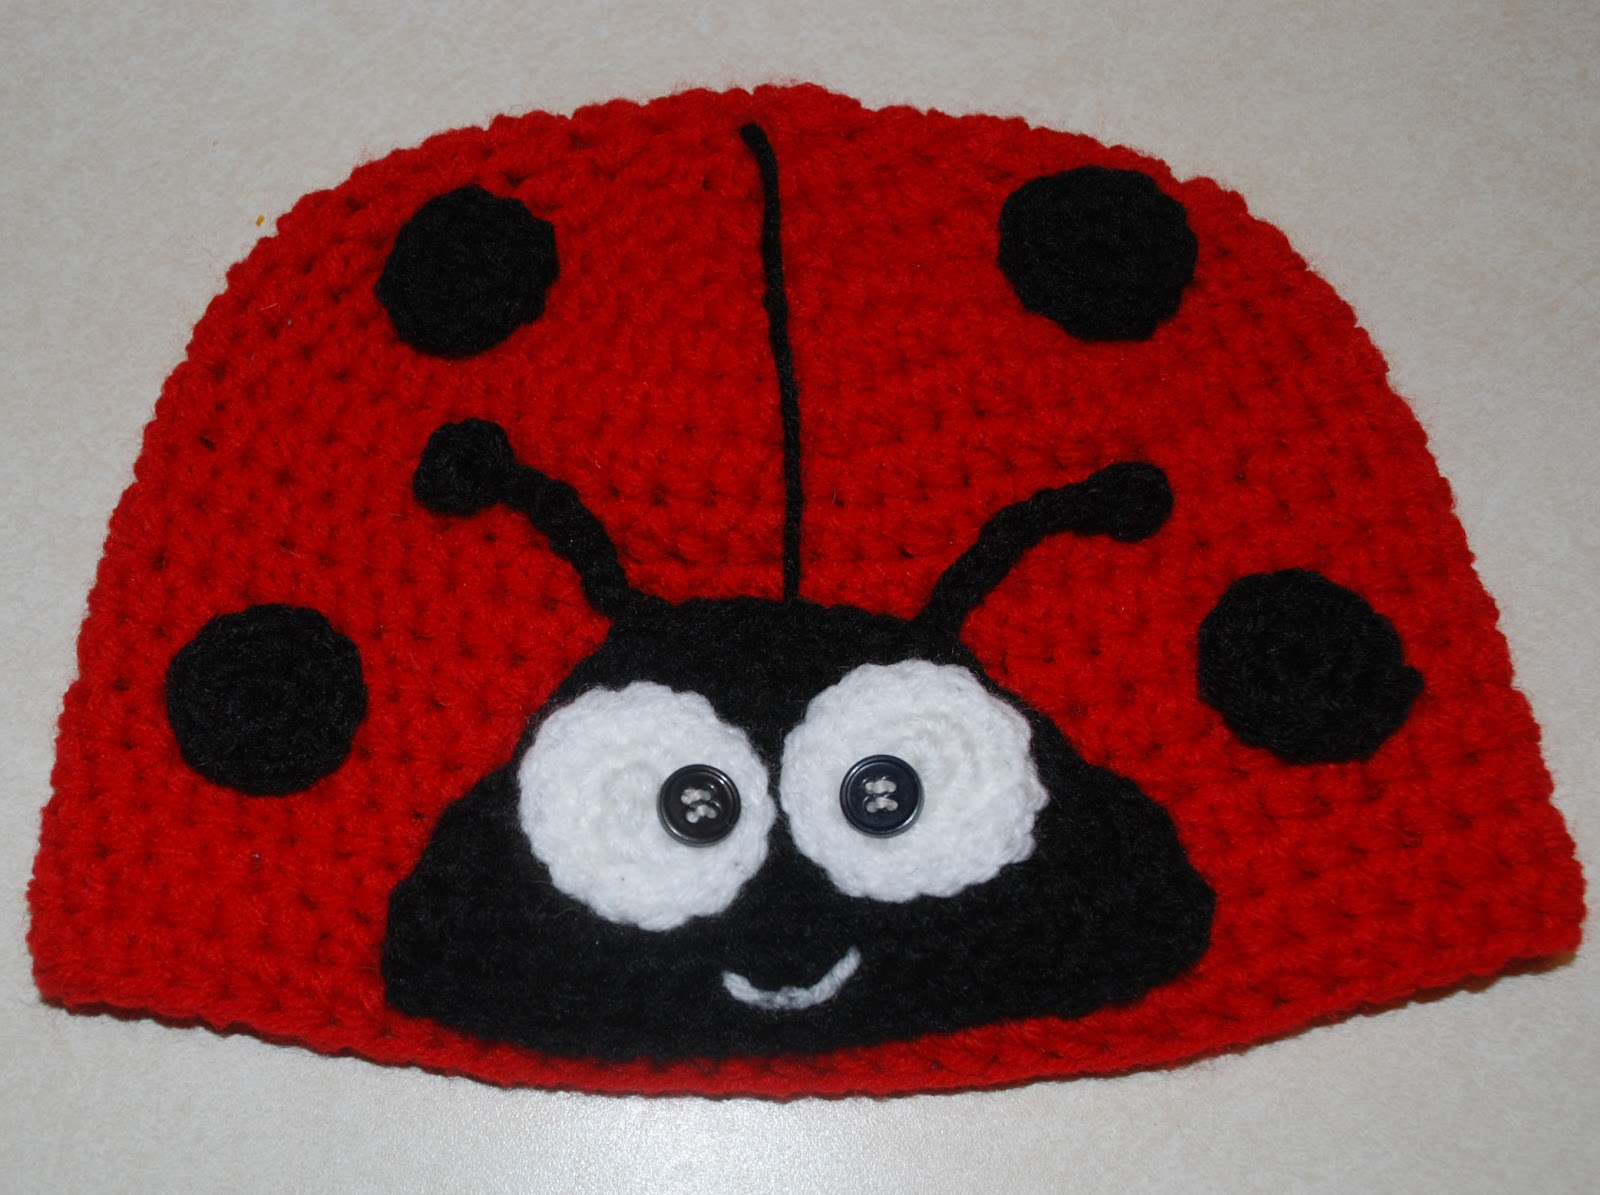 Free Crochet Ladybug Blanket Pattern : Amys Crochet Creative Creations: Crochet Ladybug Hat (All ...